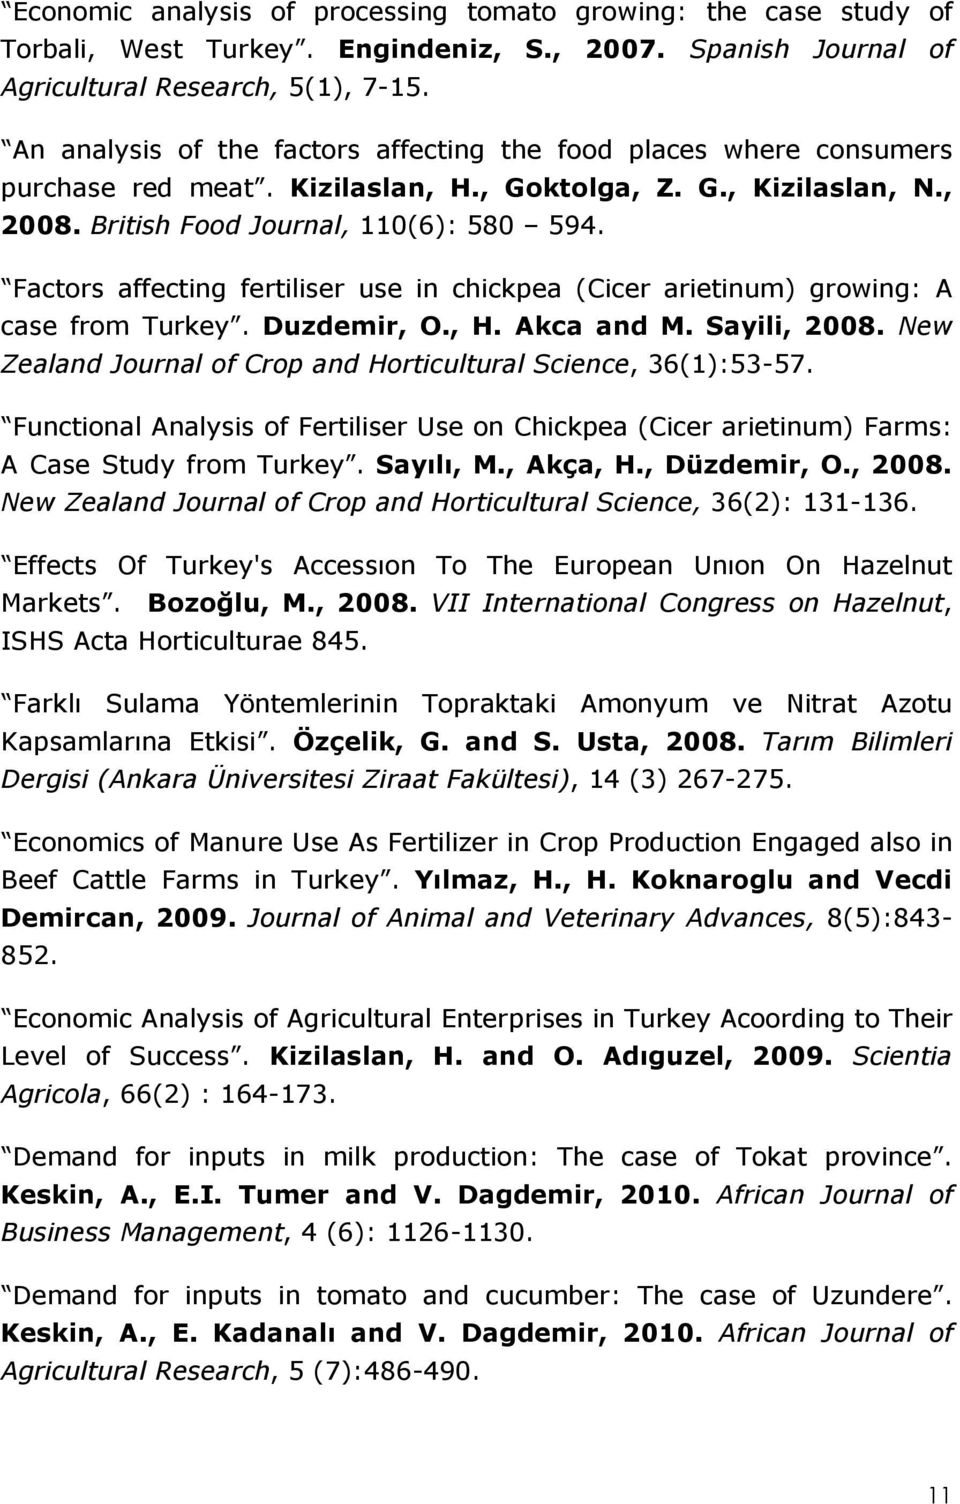 Factors affecting fertiliser use in chickpea (Cicer arietinum) growing: A case from Turkey. Duzdemir, O., H. Akca and M. Sayili, 2008.